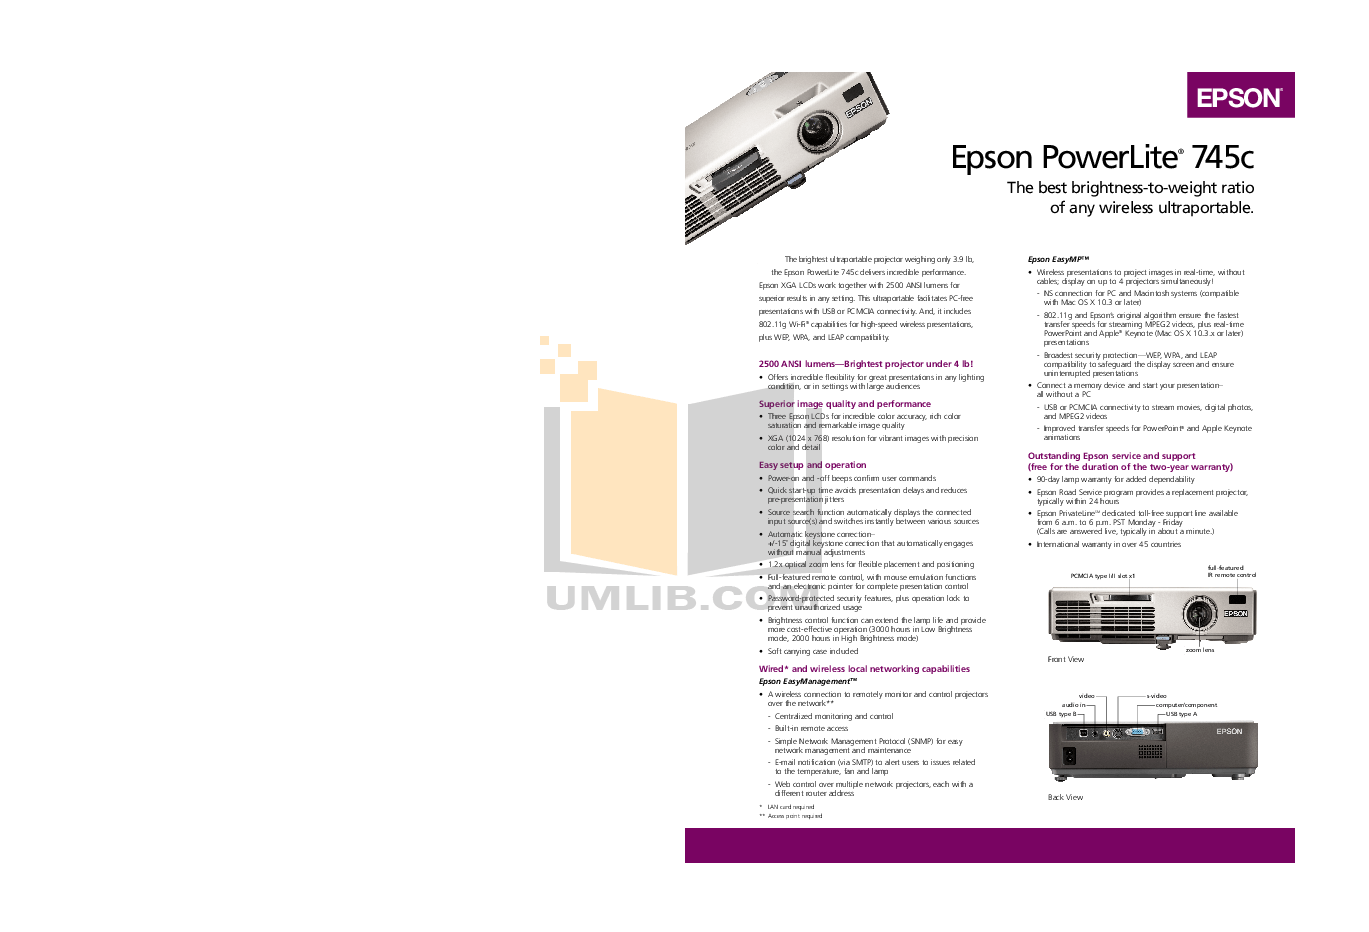 Download free pdf for Epson PowerLite 745c Projector manual